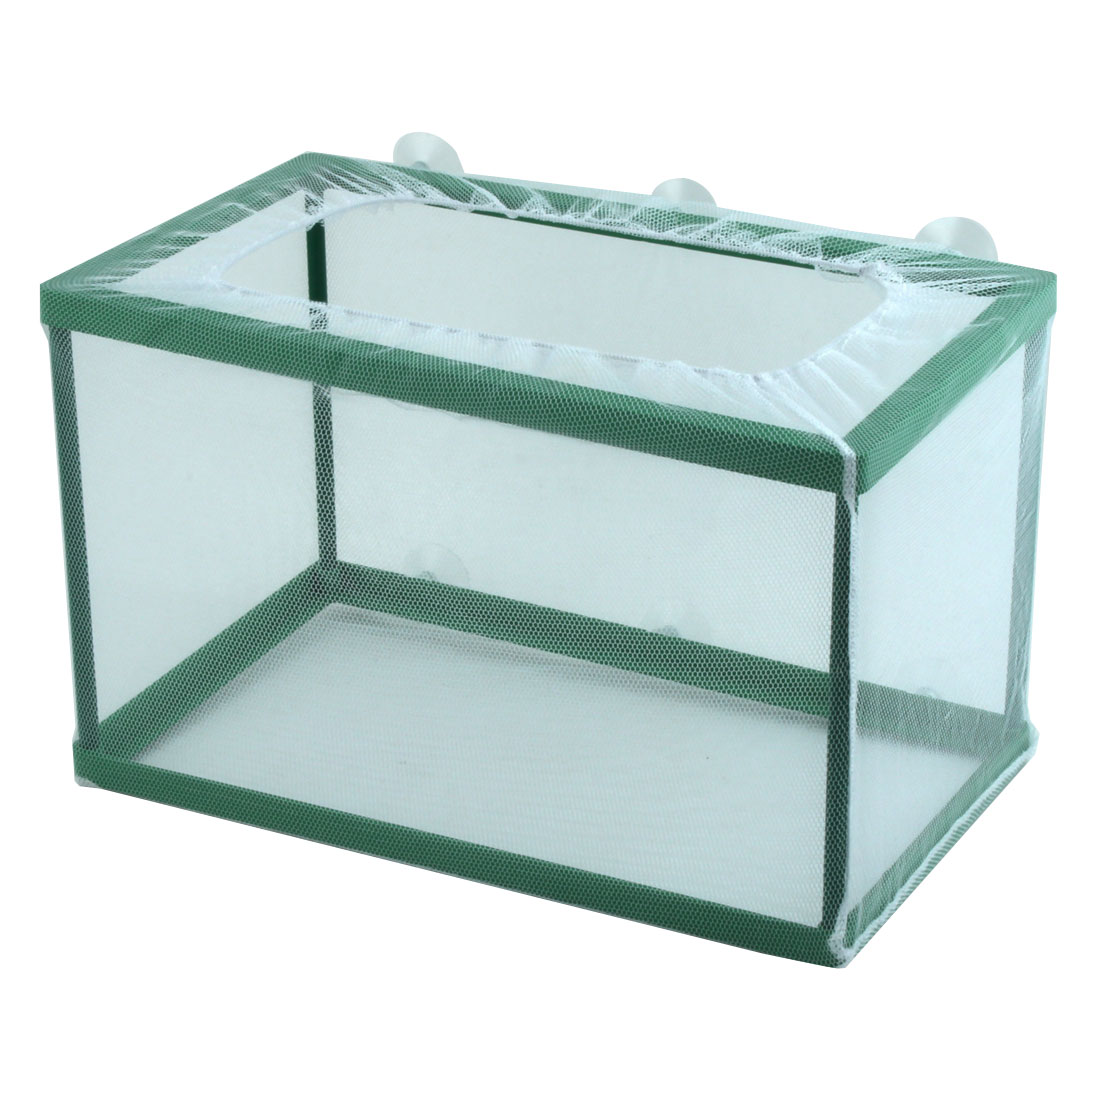 Fish Tank Aquarium Plastic Net Frame Hatchery Breeder Suction Cup Green White